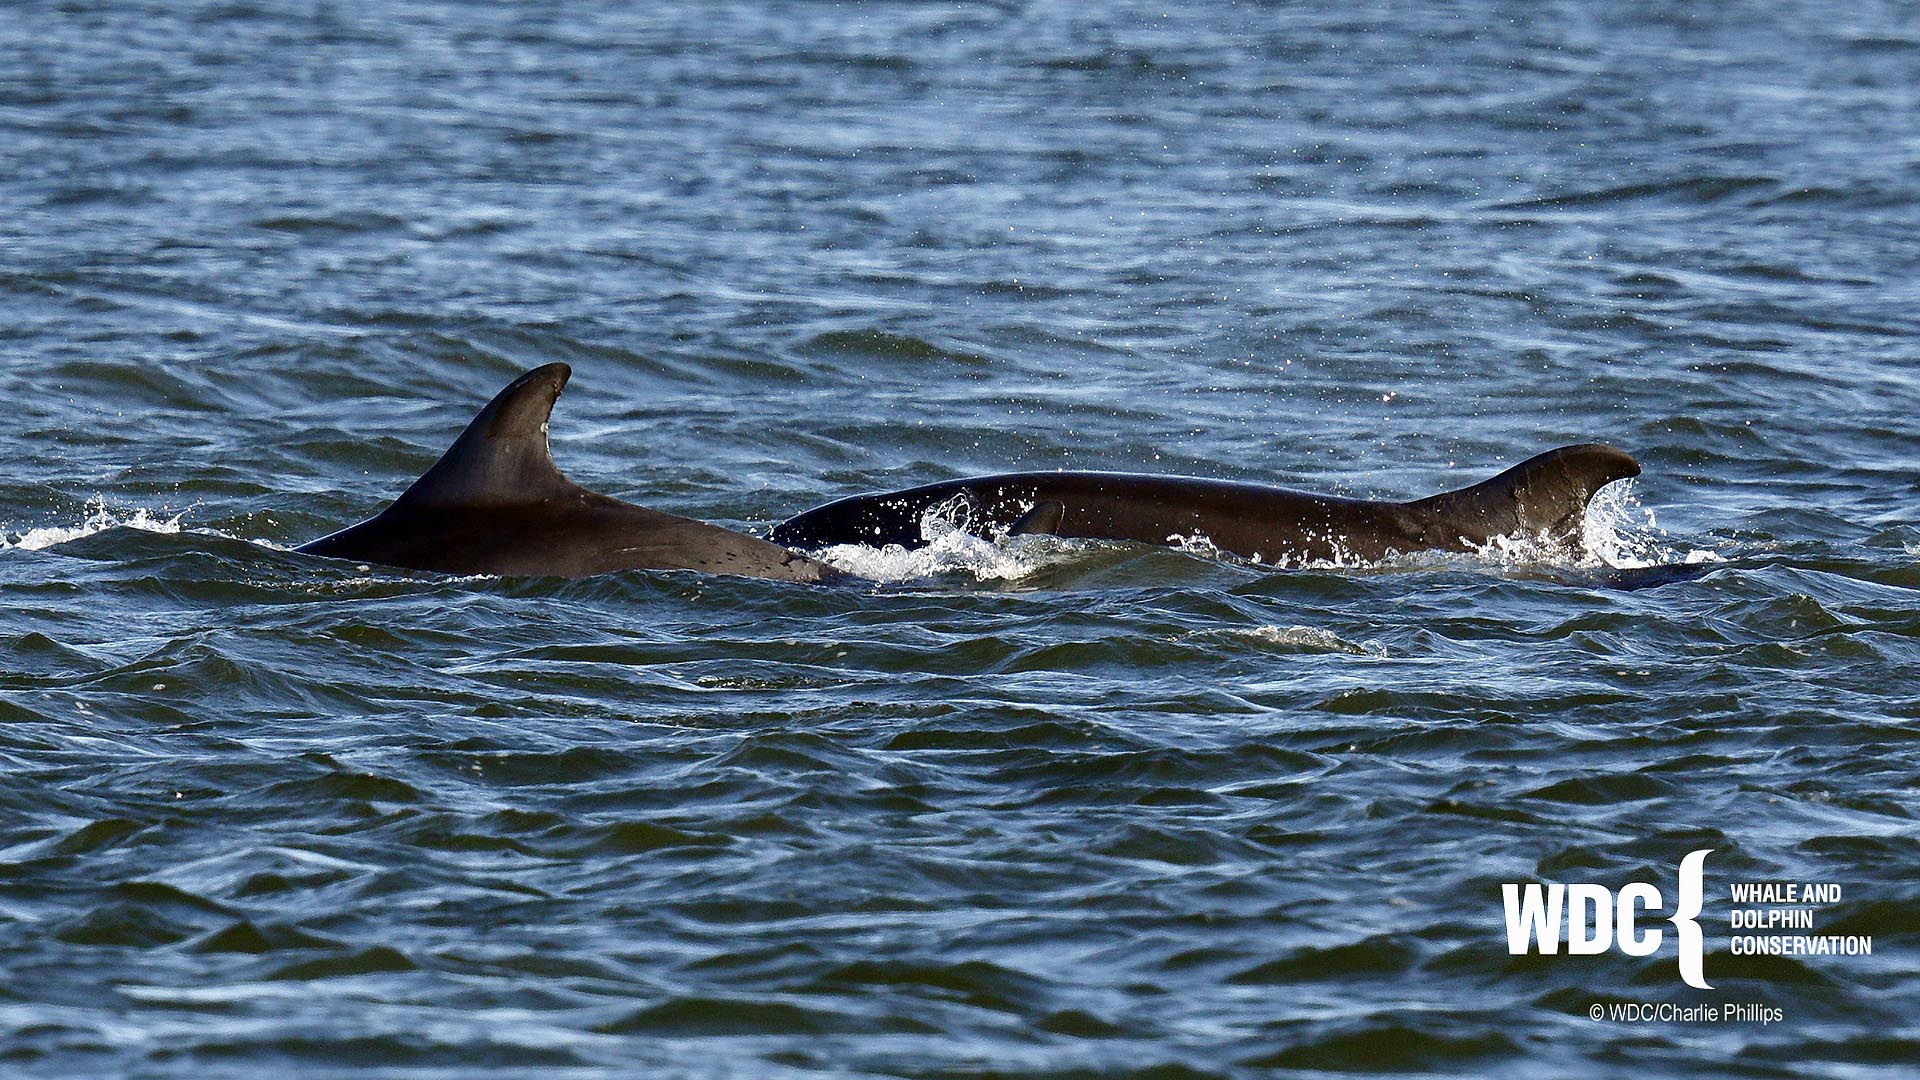 Dolphin Sightings Update - Whale & Dolphin Conservation USA